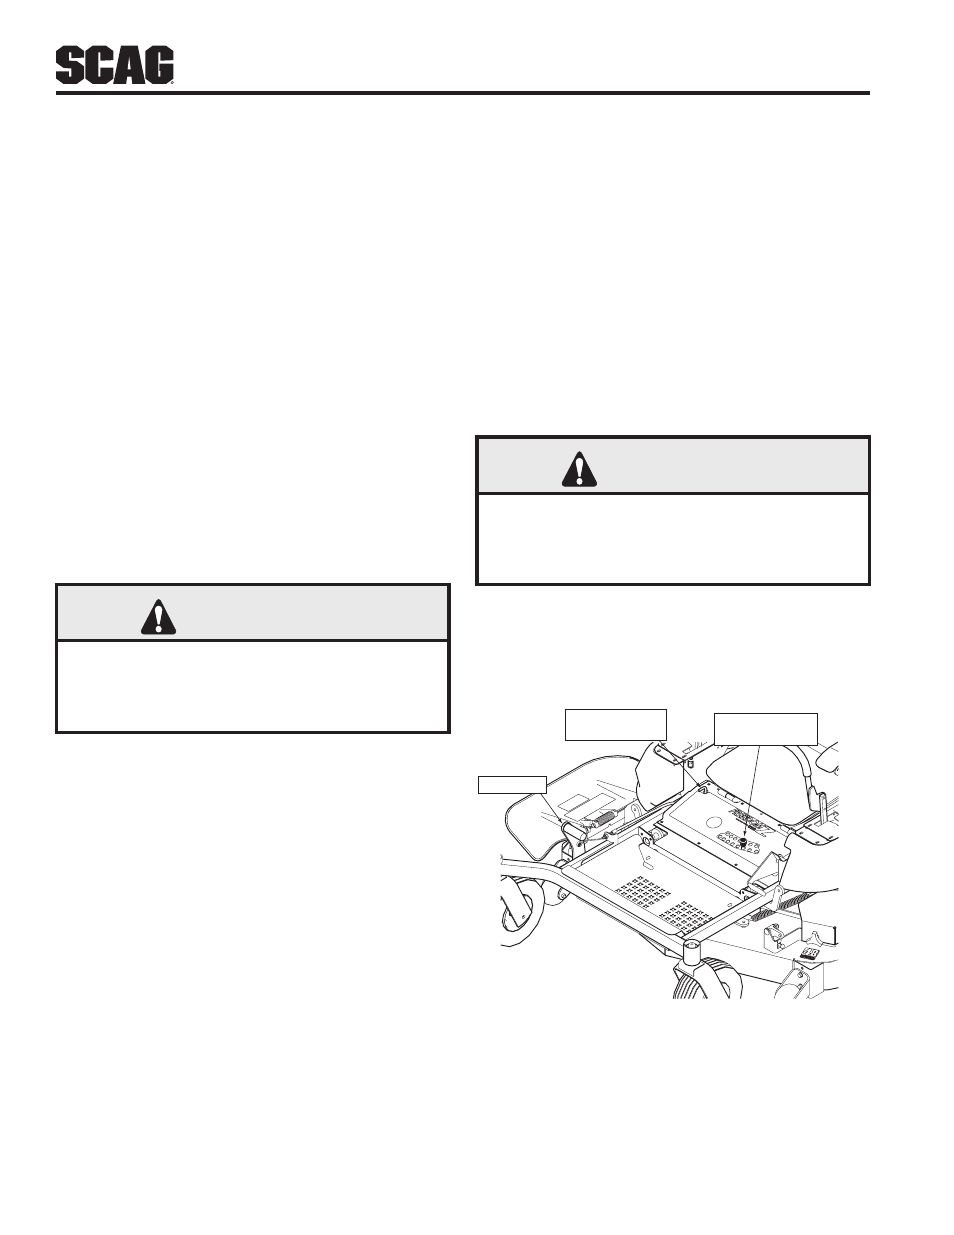 11 Moving Mower With Engine Stopped  12 Recommendations